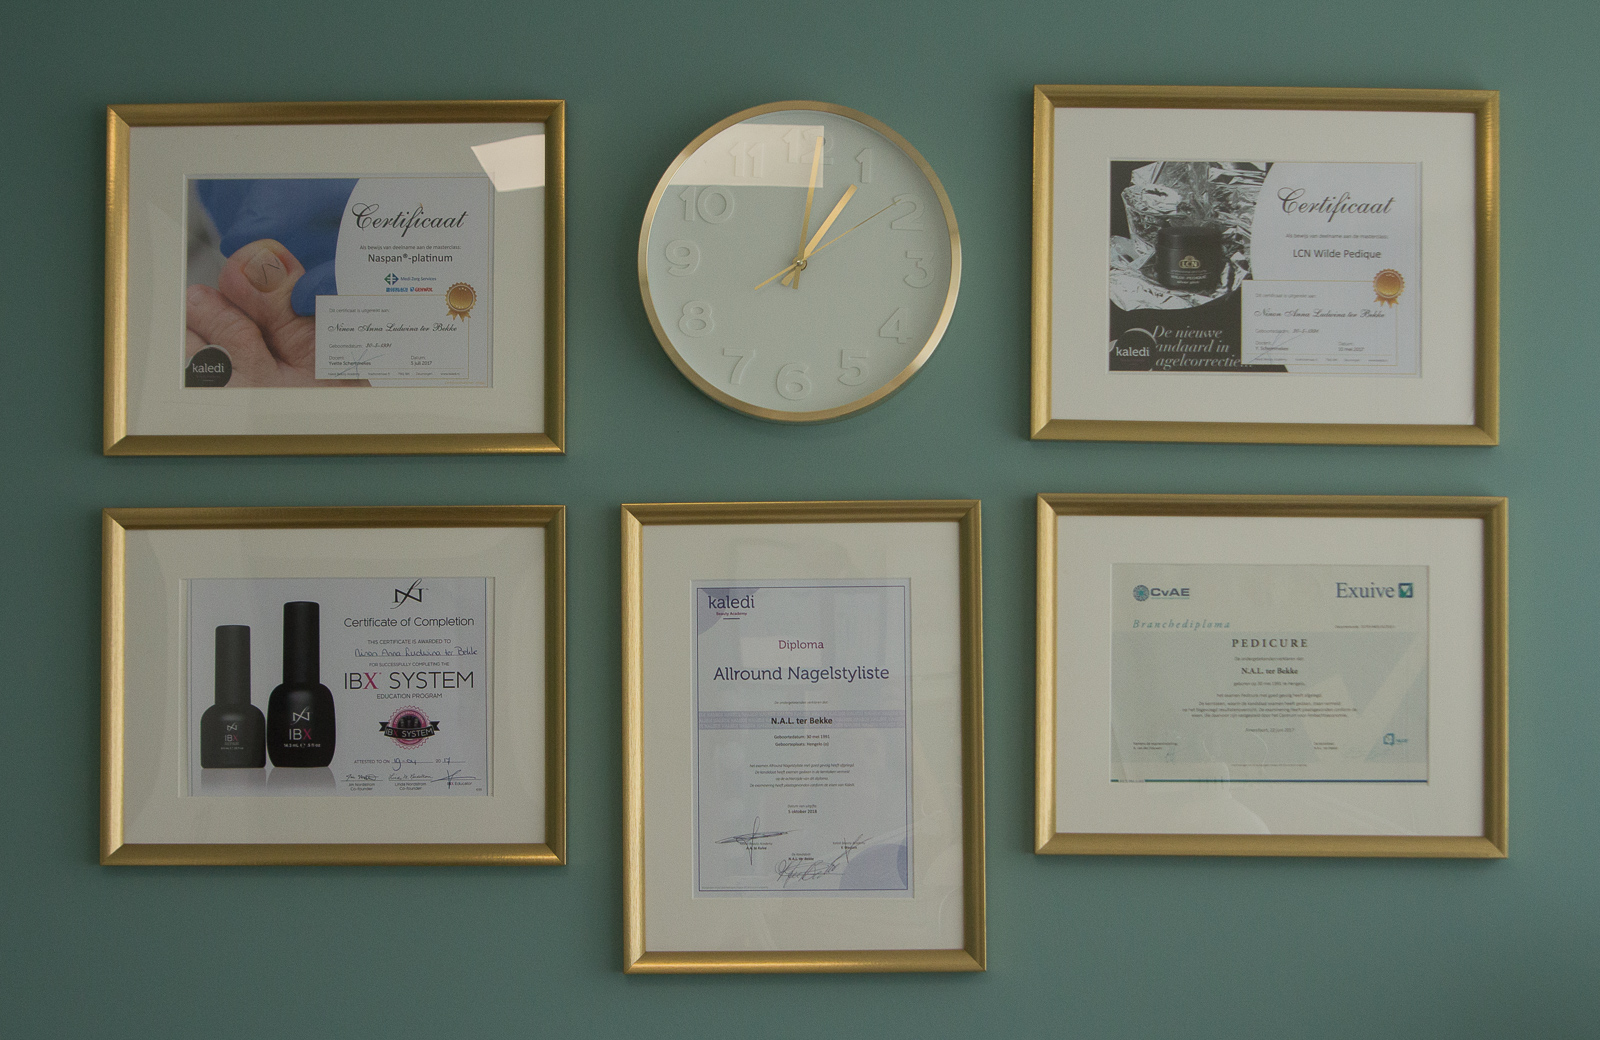 About Ninon - diplomas and certifications